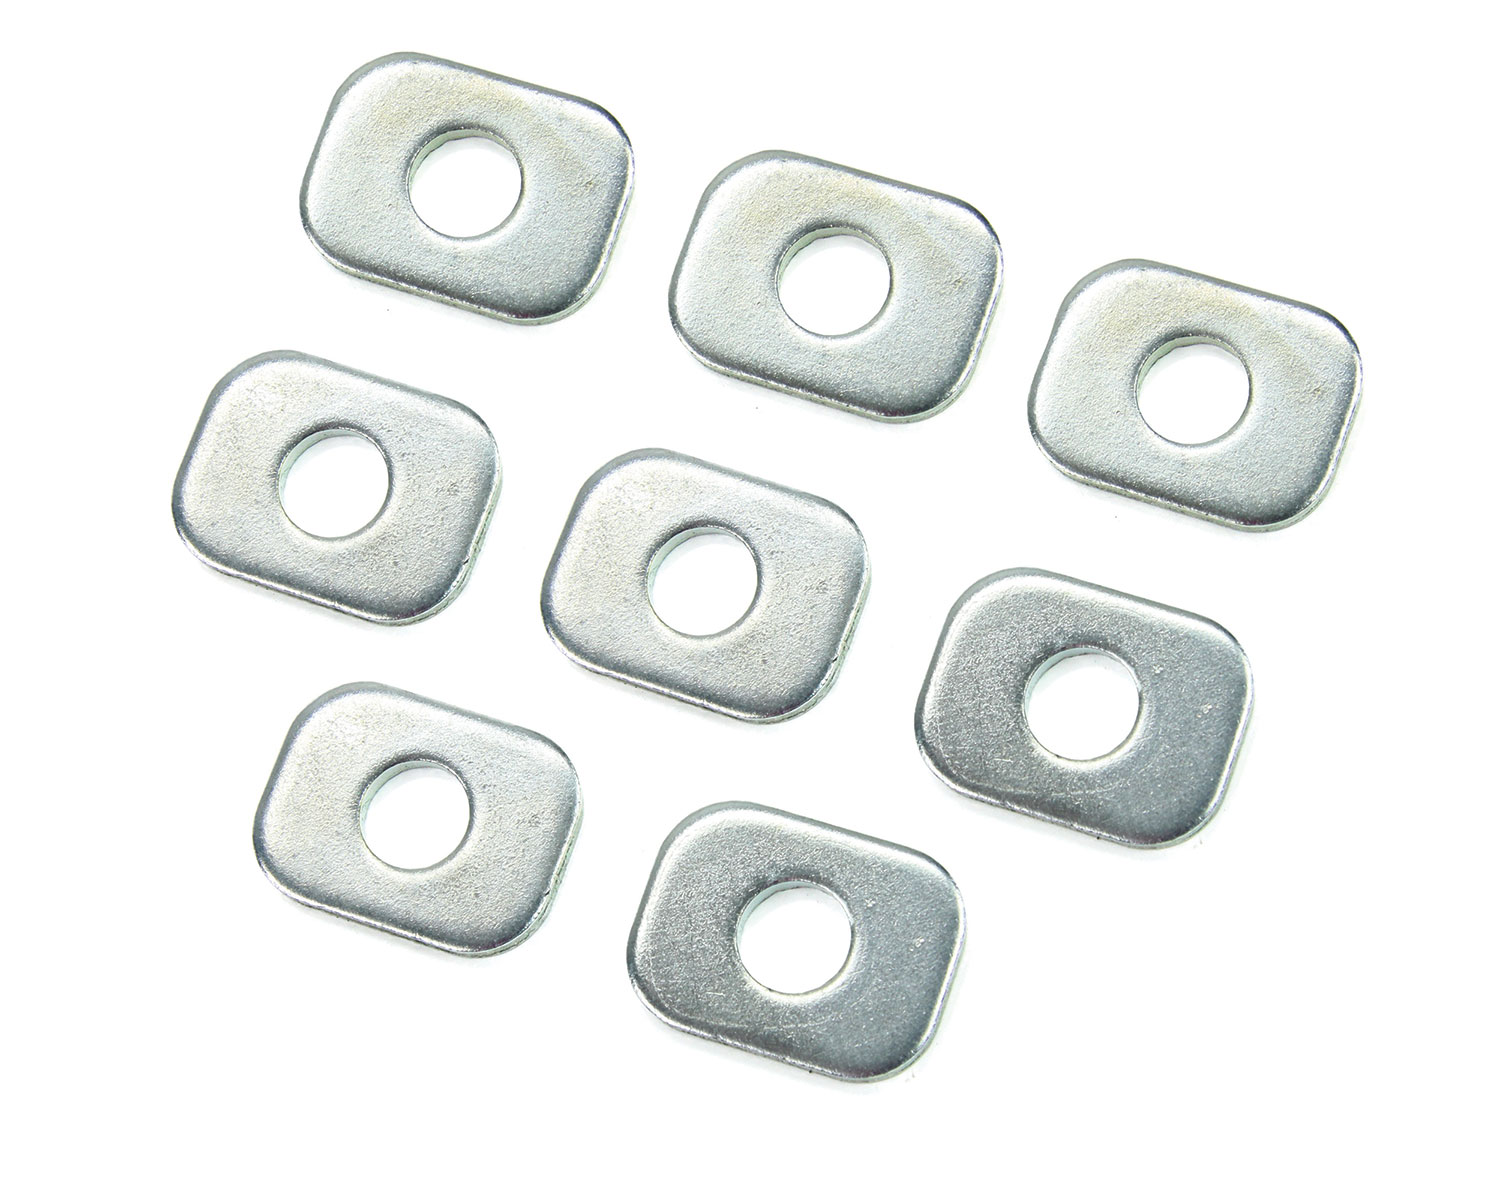 4951700 Teraflex Alignment Caster/Camber Washers For Use With FlexArm